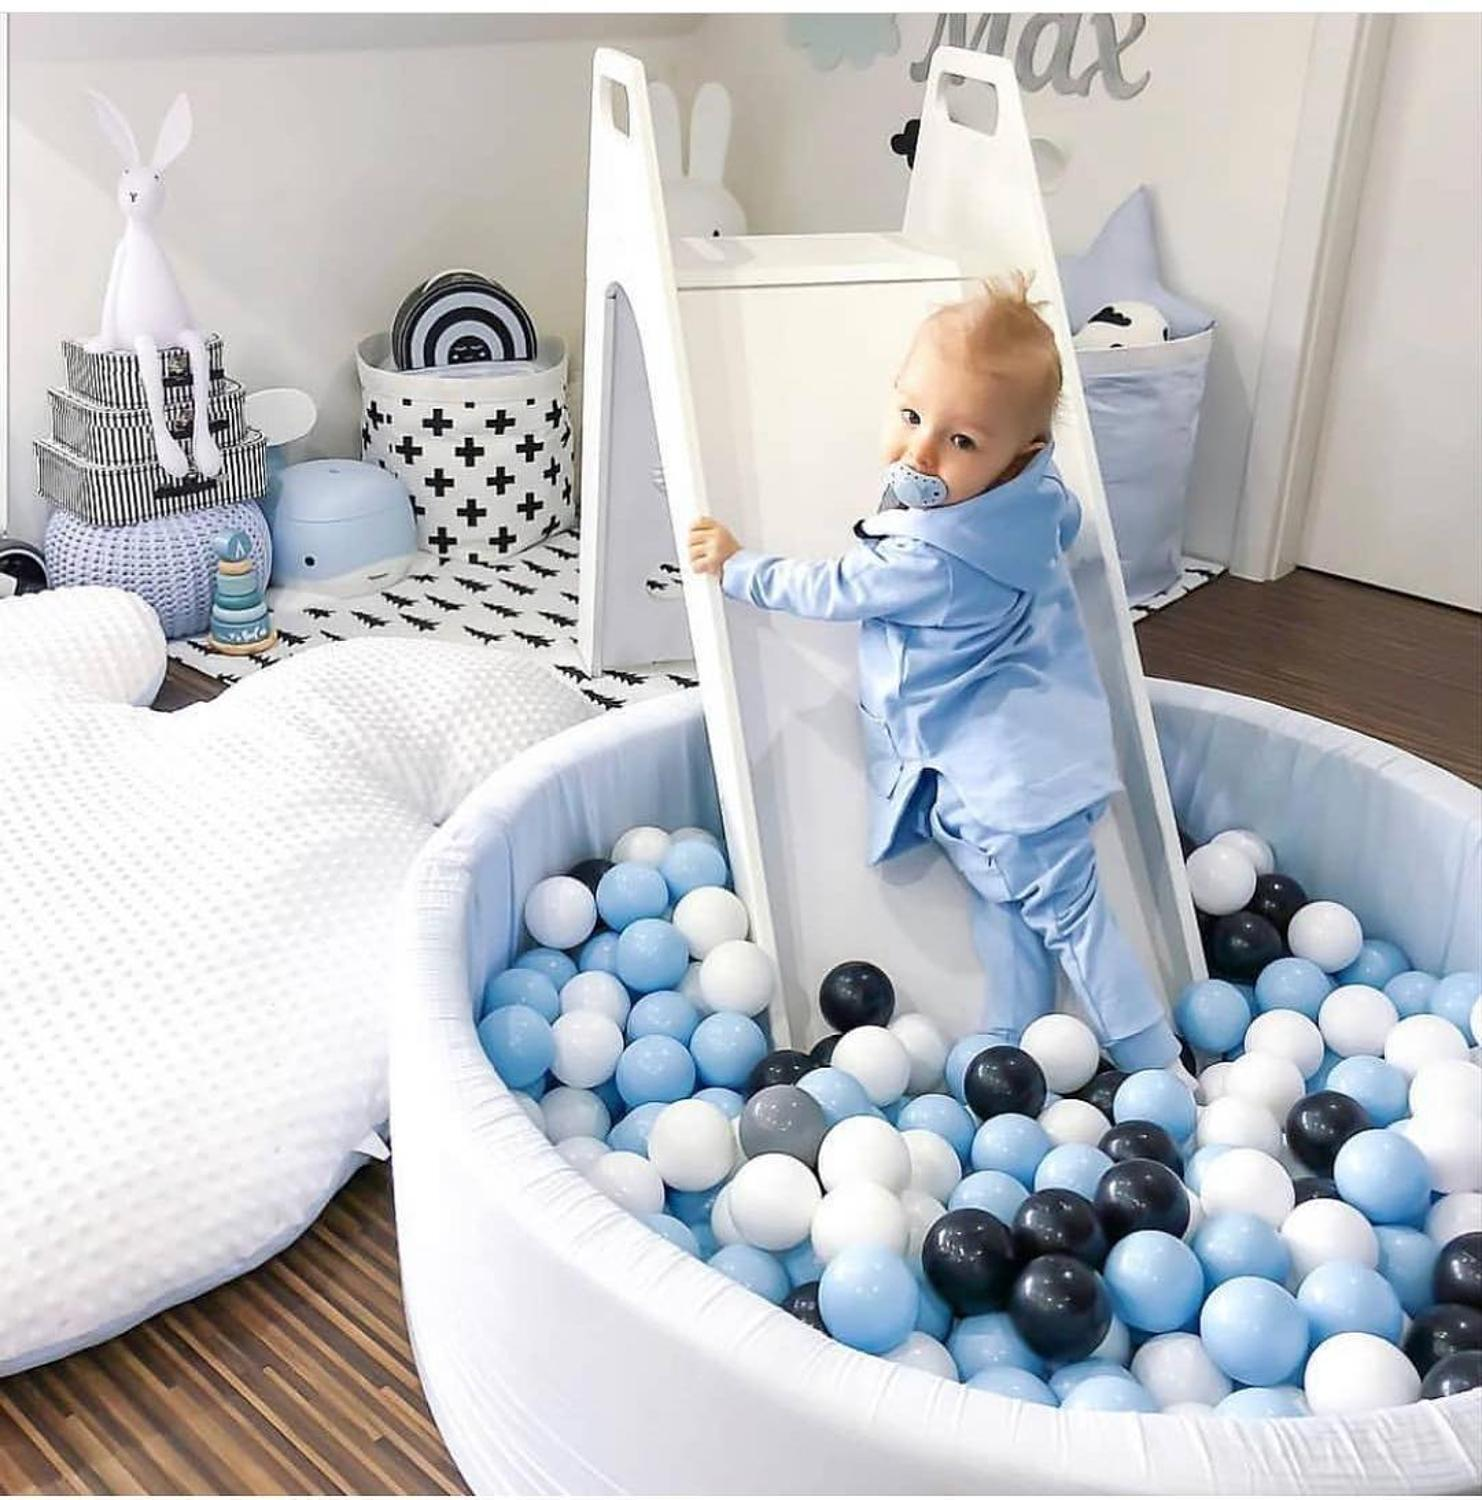 Kids Ball Pit - INS Hot Children Fencing Playpen Soft Round Kiddie Balls Pool Indoor Nursery Play Toy Gift for Baby Infant Room